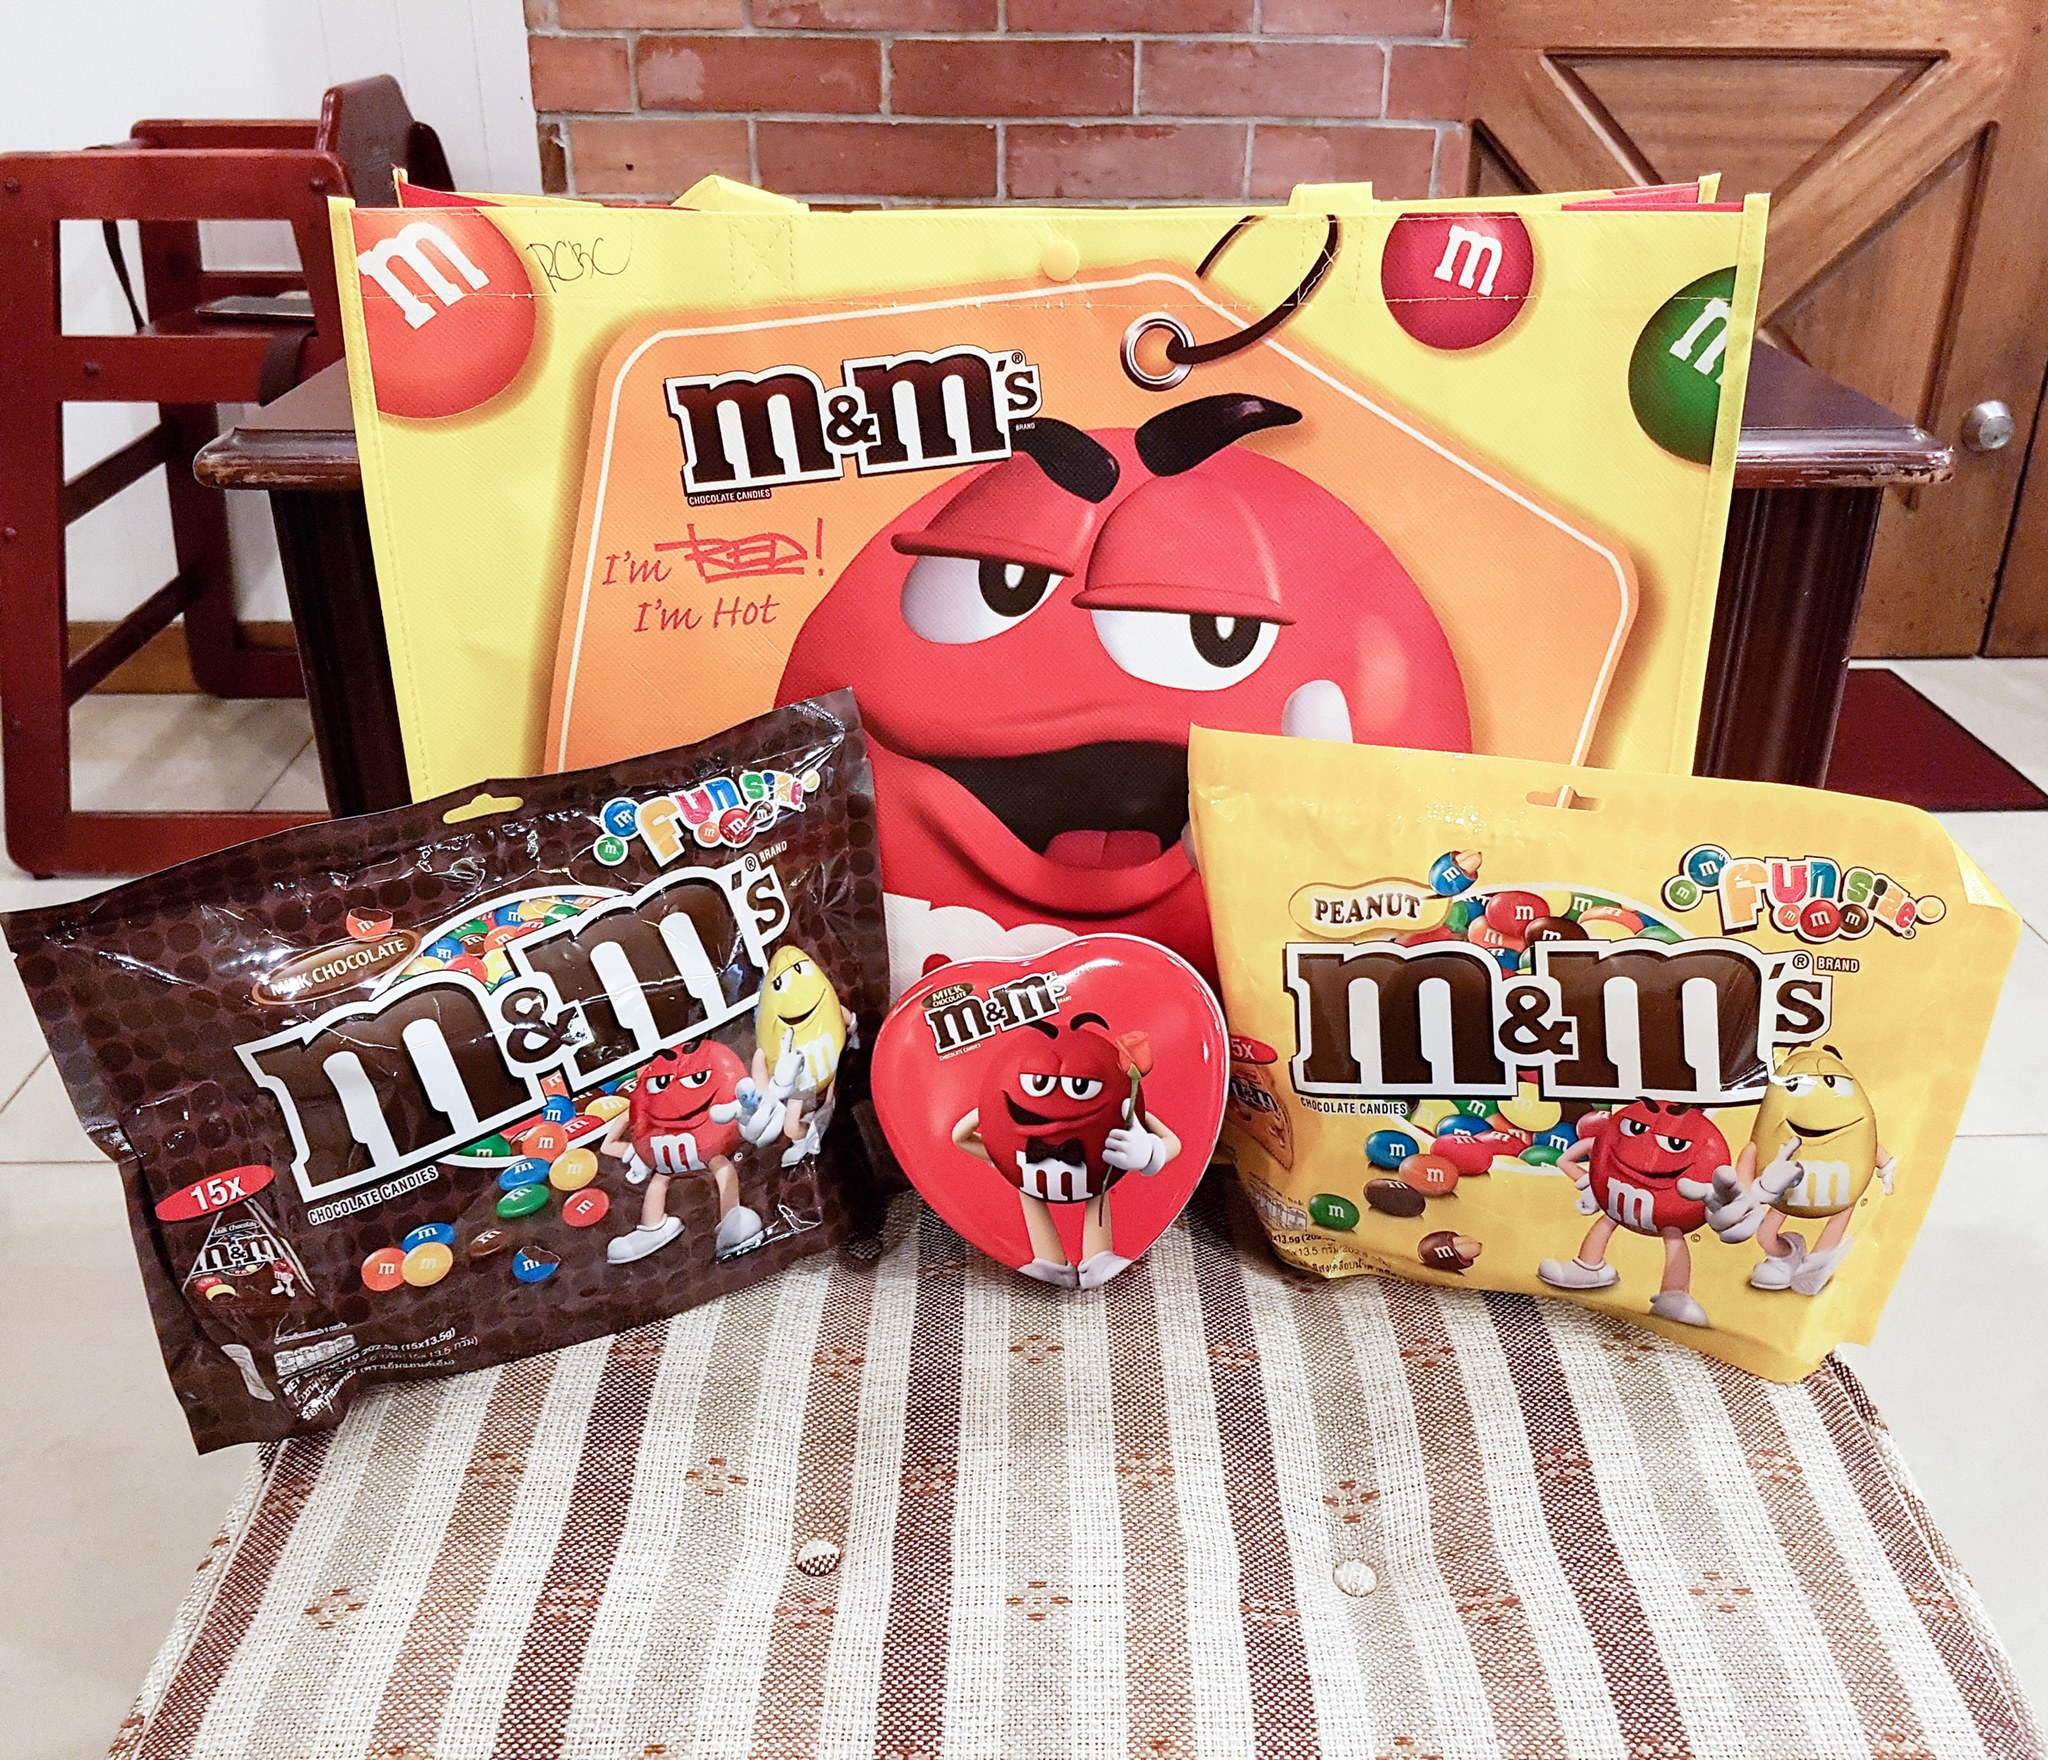 set of chocolates for valentines day here is a party pack of regular and peanut mms plus a heart shaped can which you can give to your girlfriend